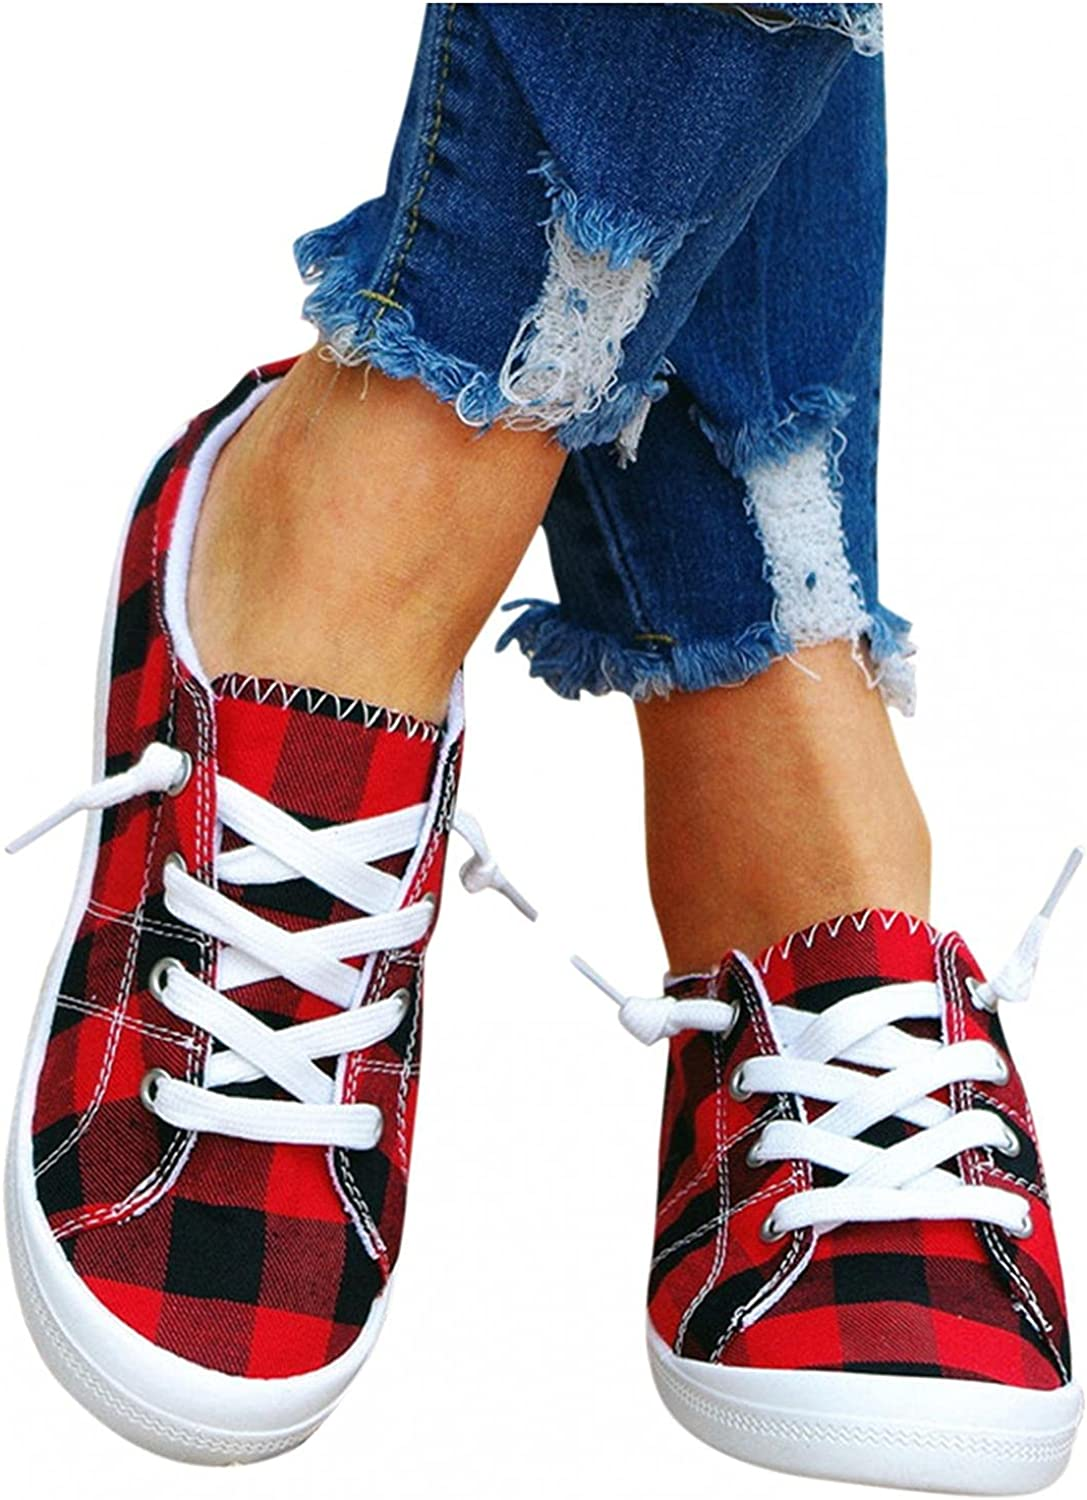 Choice Selling Hbeylia Canvas Shoes For Women Fashion Low Casual Lace Up Plaid